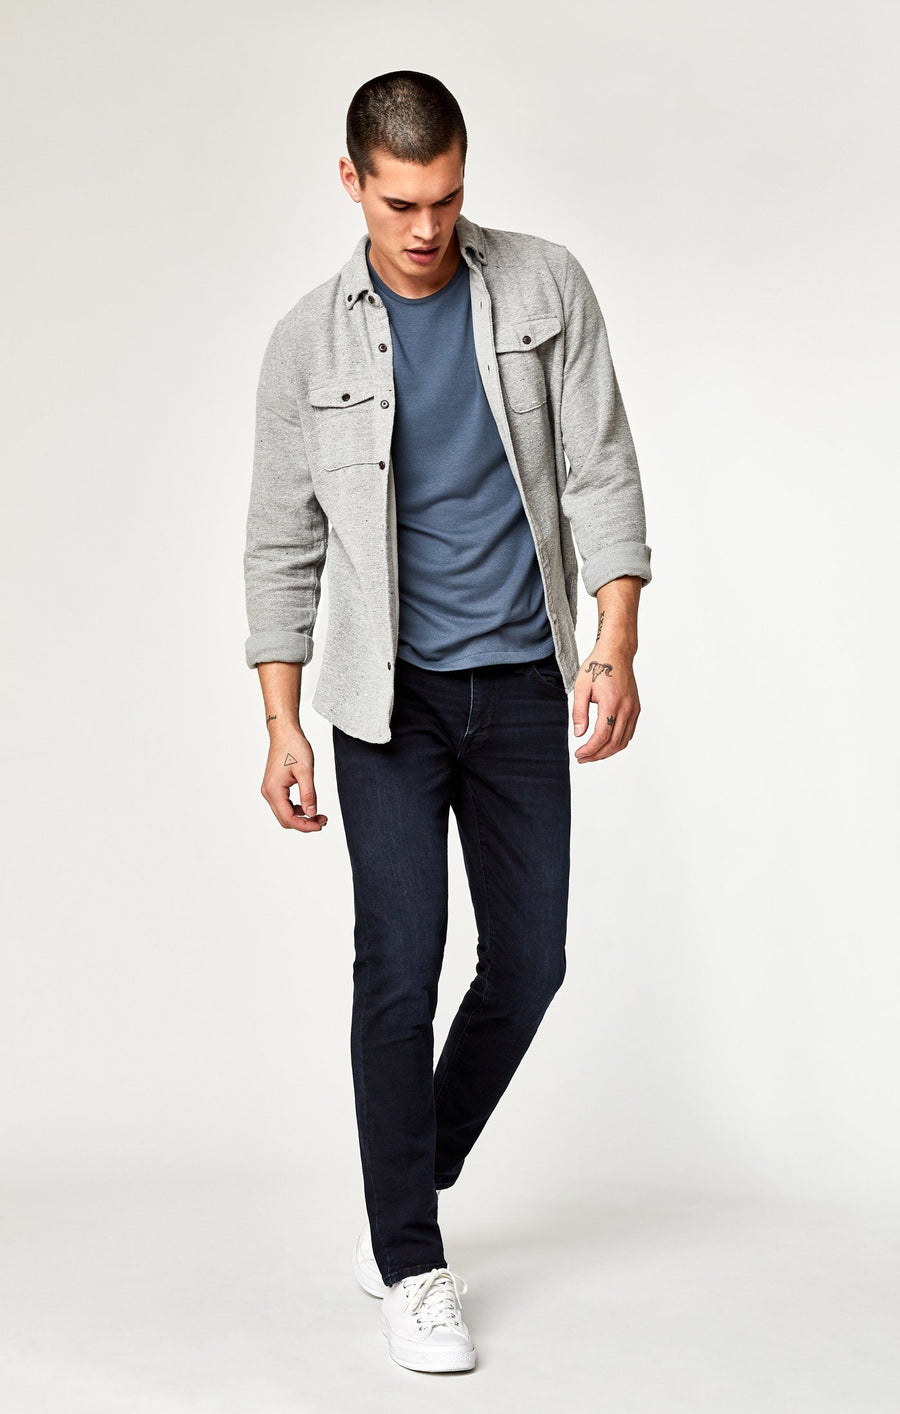 JAMES SKINNY IN INK FOGGY WILLIAMSBURG - Mavi Jeans